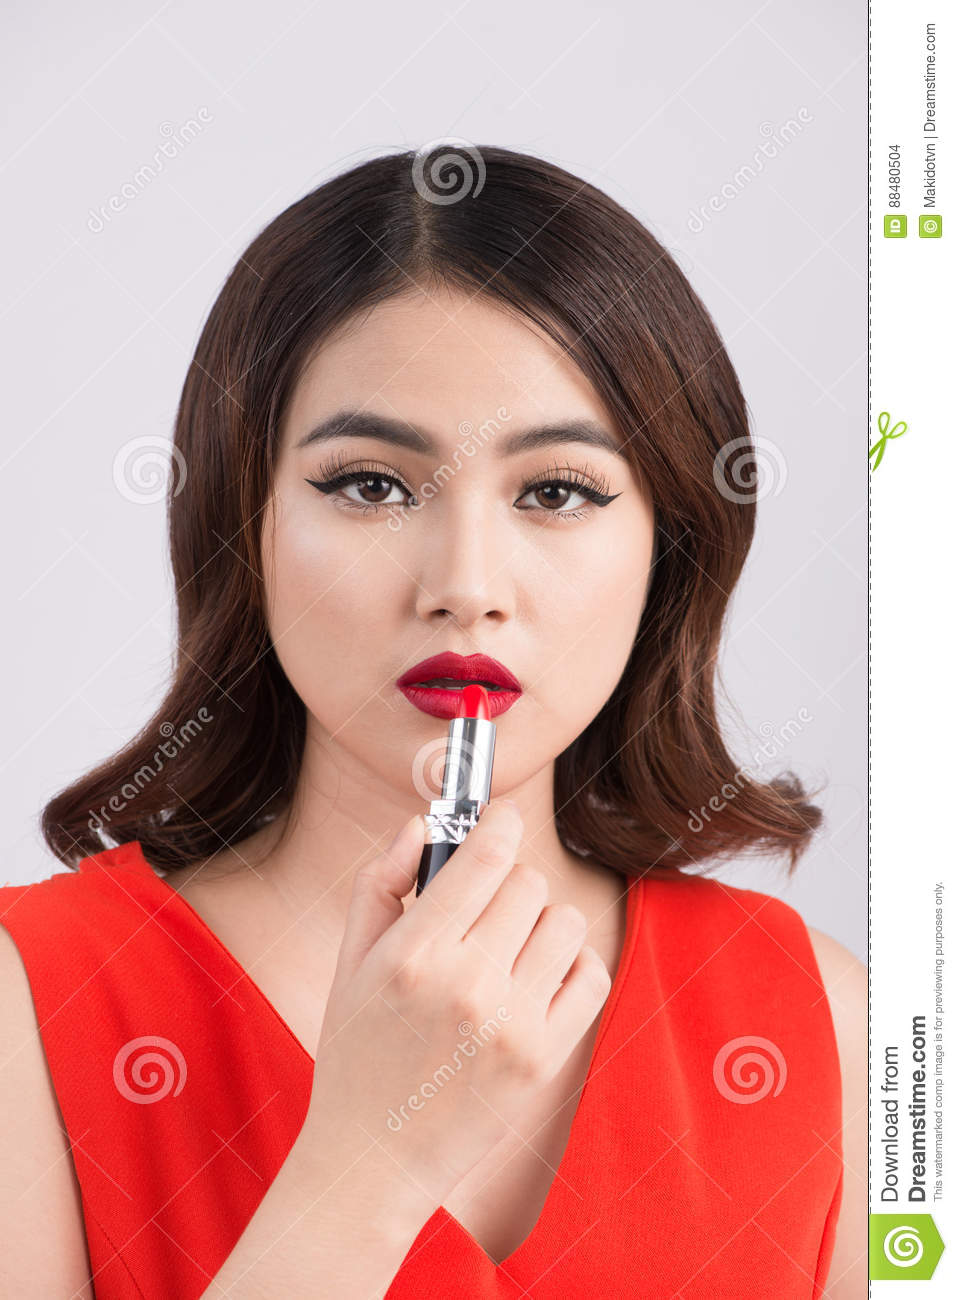 Young asian woman with dark hair using red lipstick.